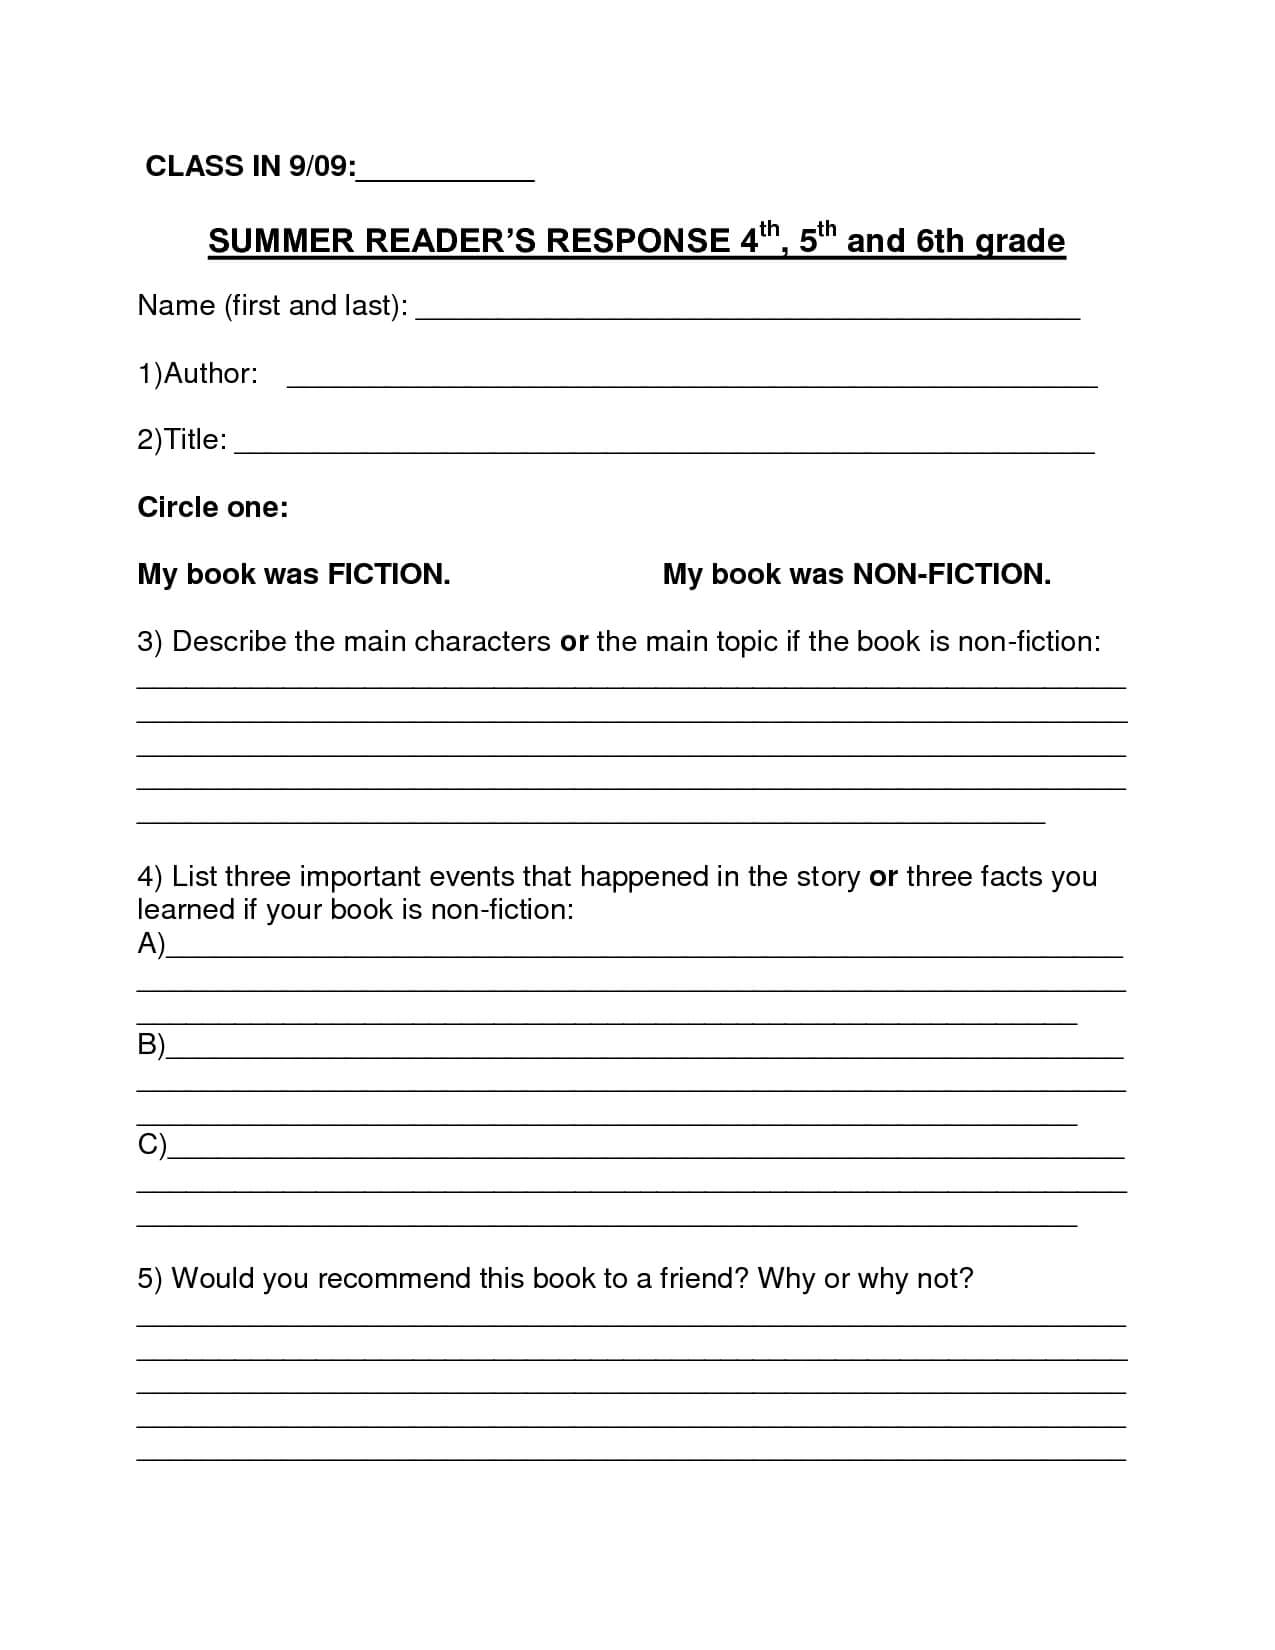 Book Report Template | Summer Book Report 4Th  6Th Grade Pertaining To 6Th Grade Book Report Template